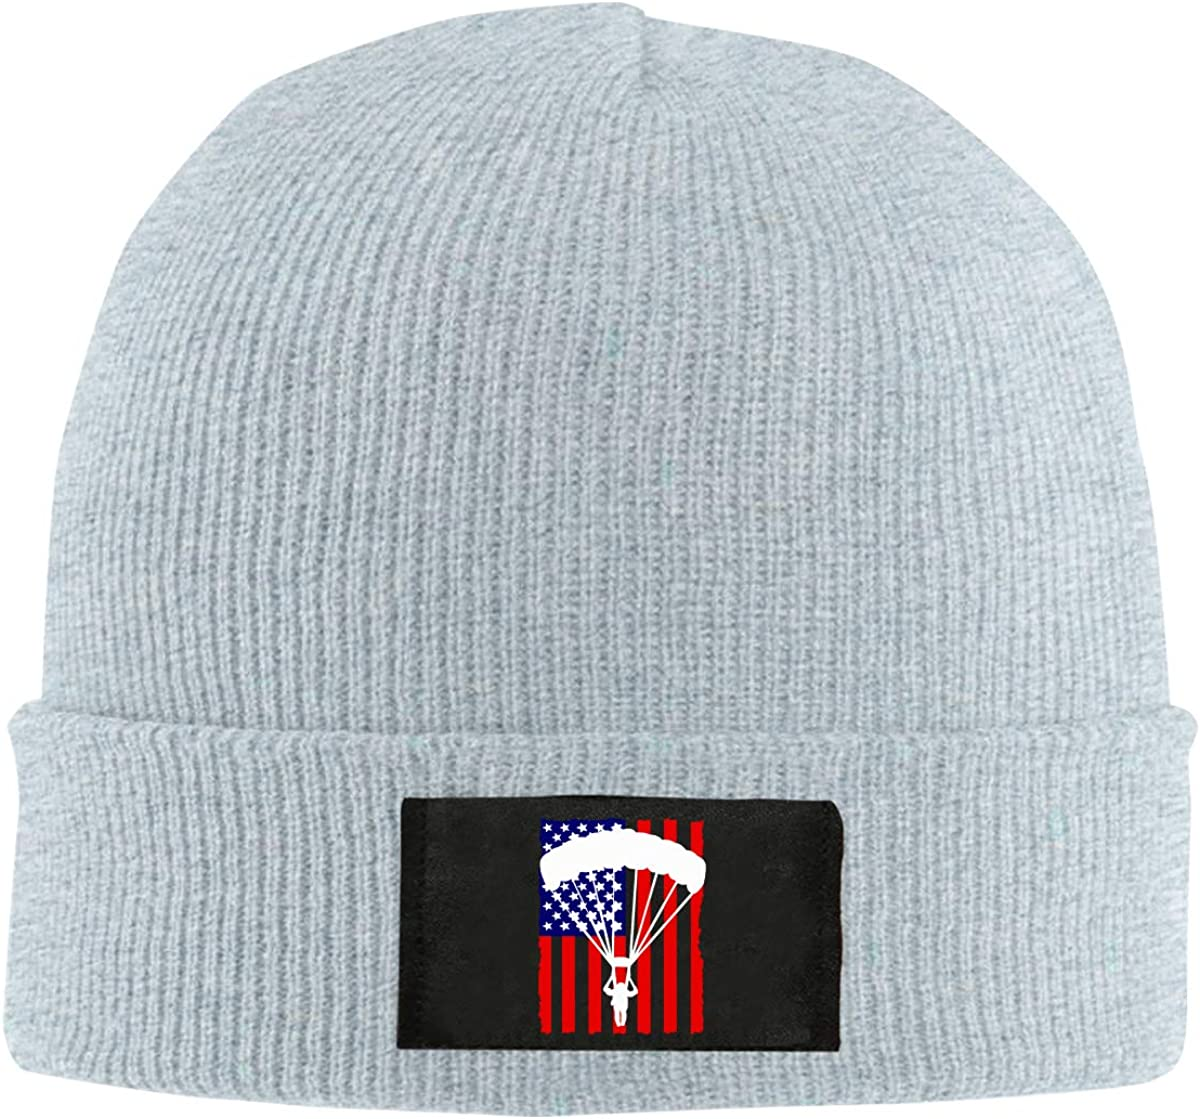 American Parachuting Skydiving USA Flag Women and Men Knitted Hat Fashion Warm Pure Color Hat